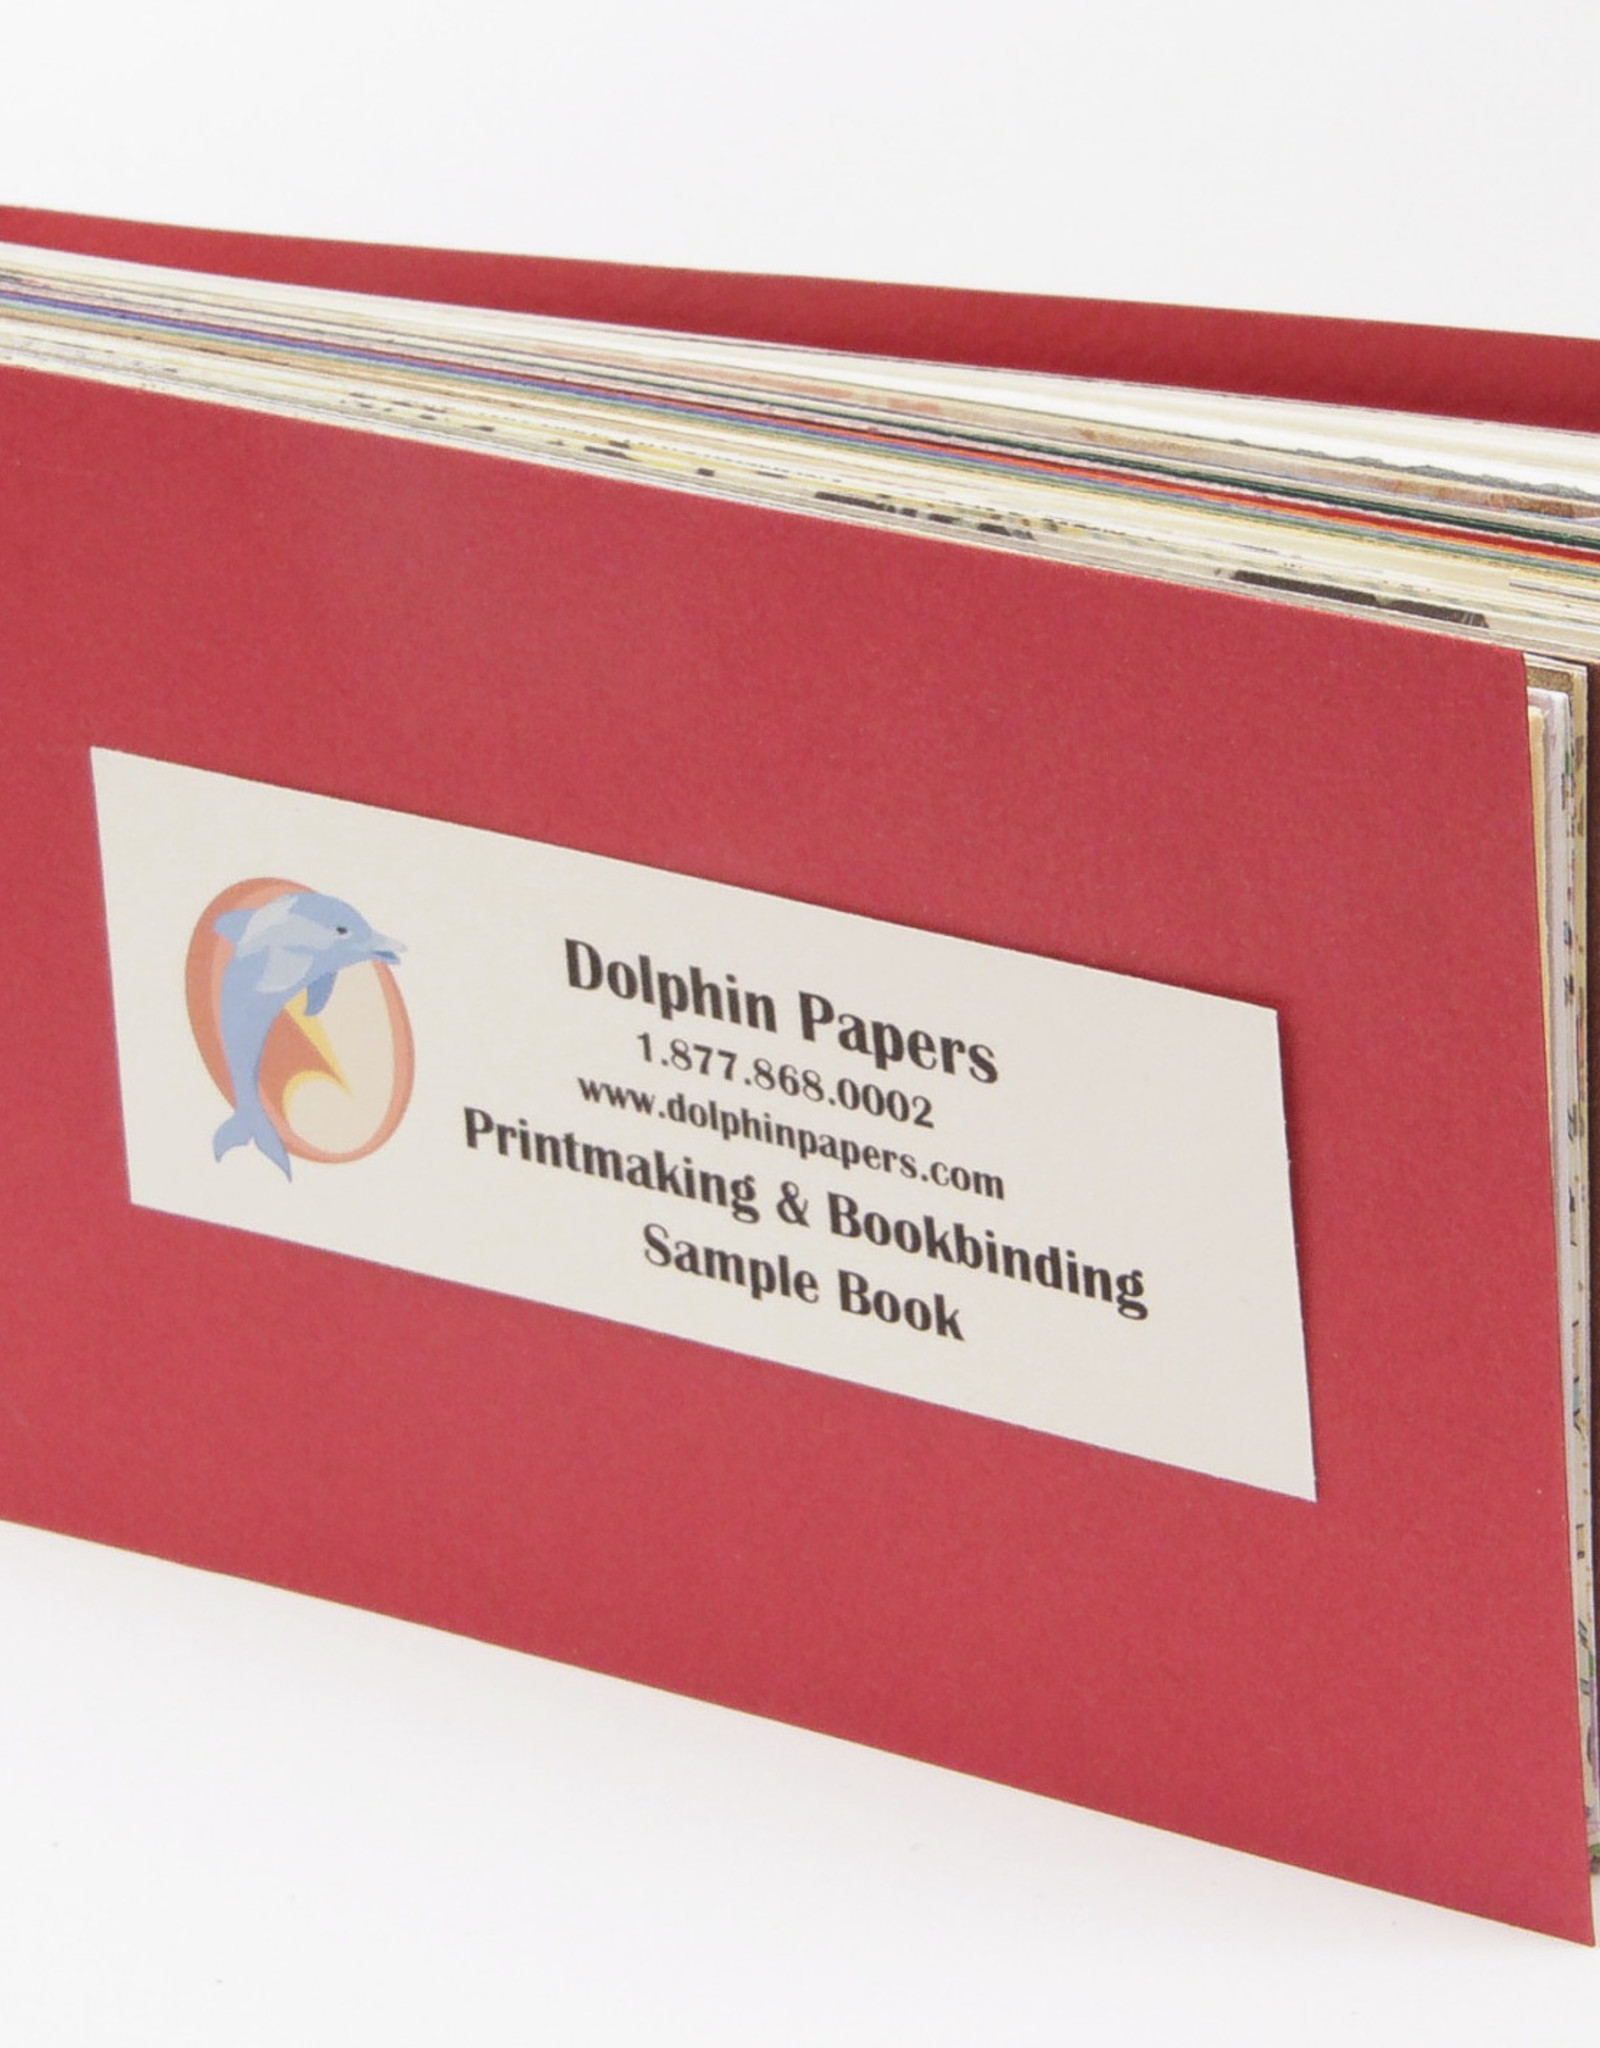 Dolphin Papers Printmaking & Bookbinding, Sample Book